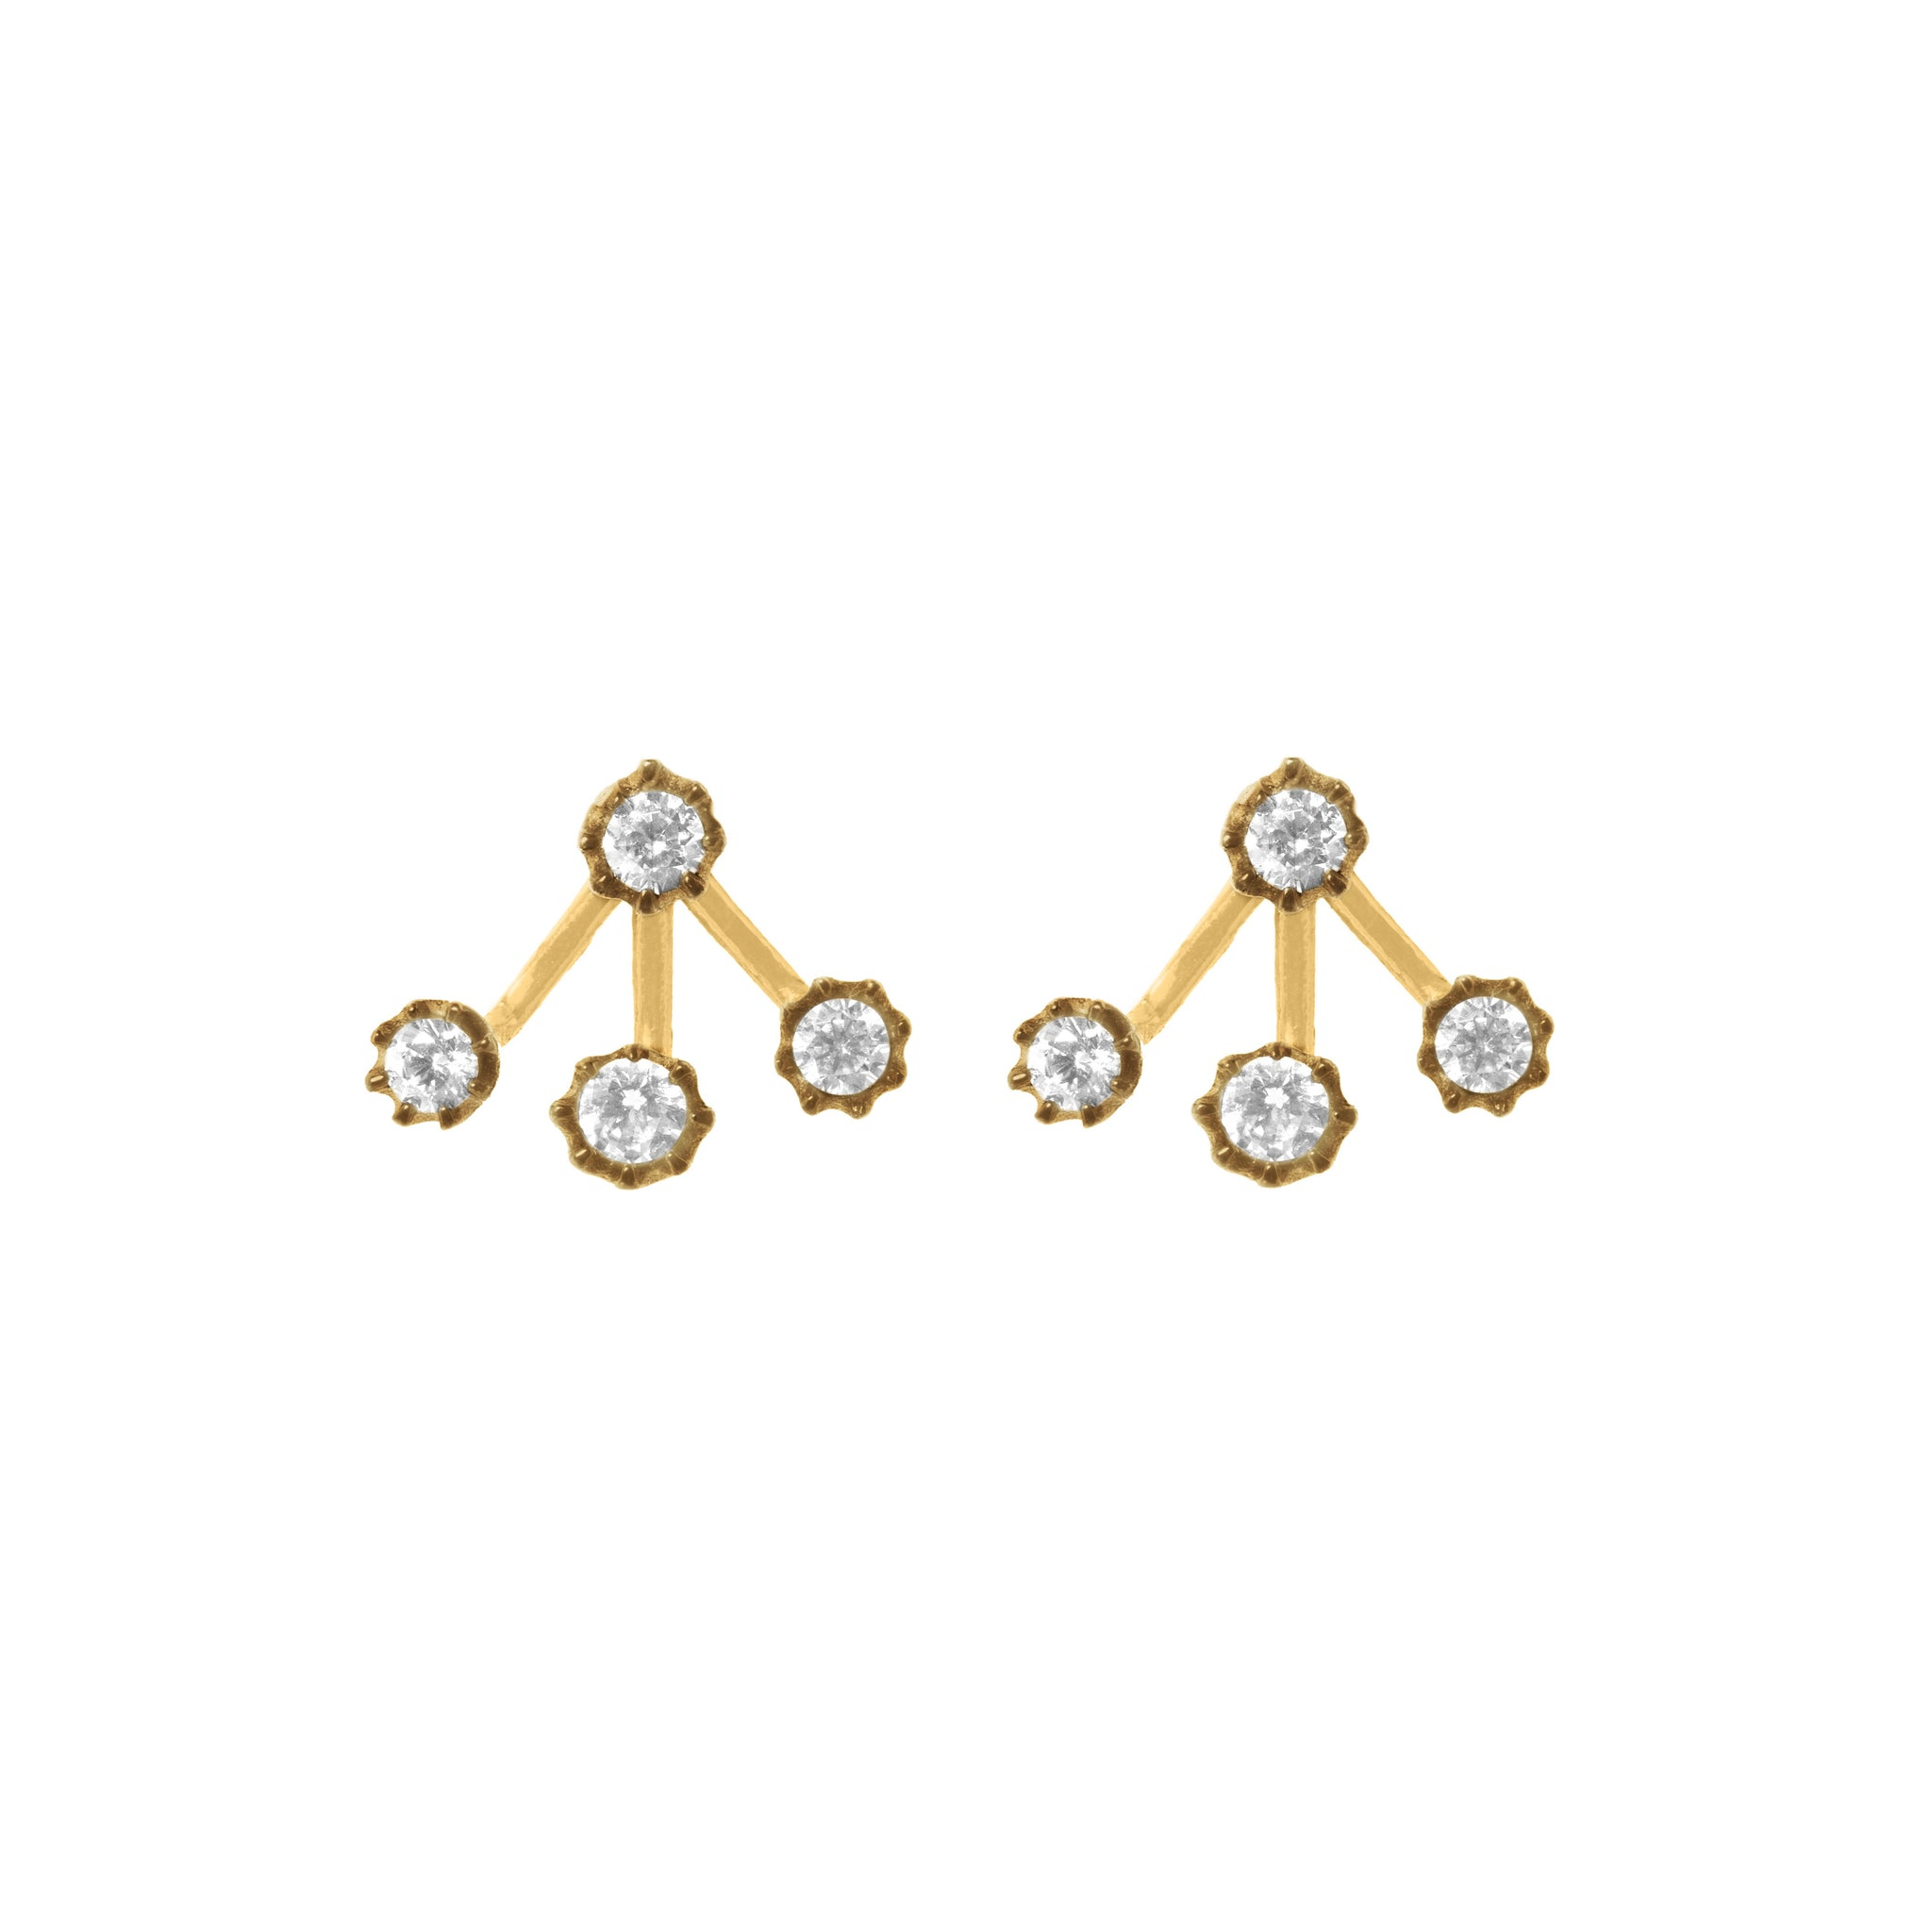 Olivia gold earrings